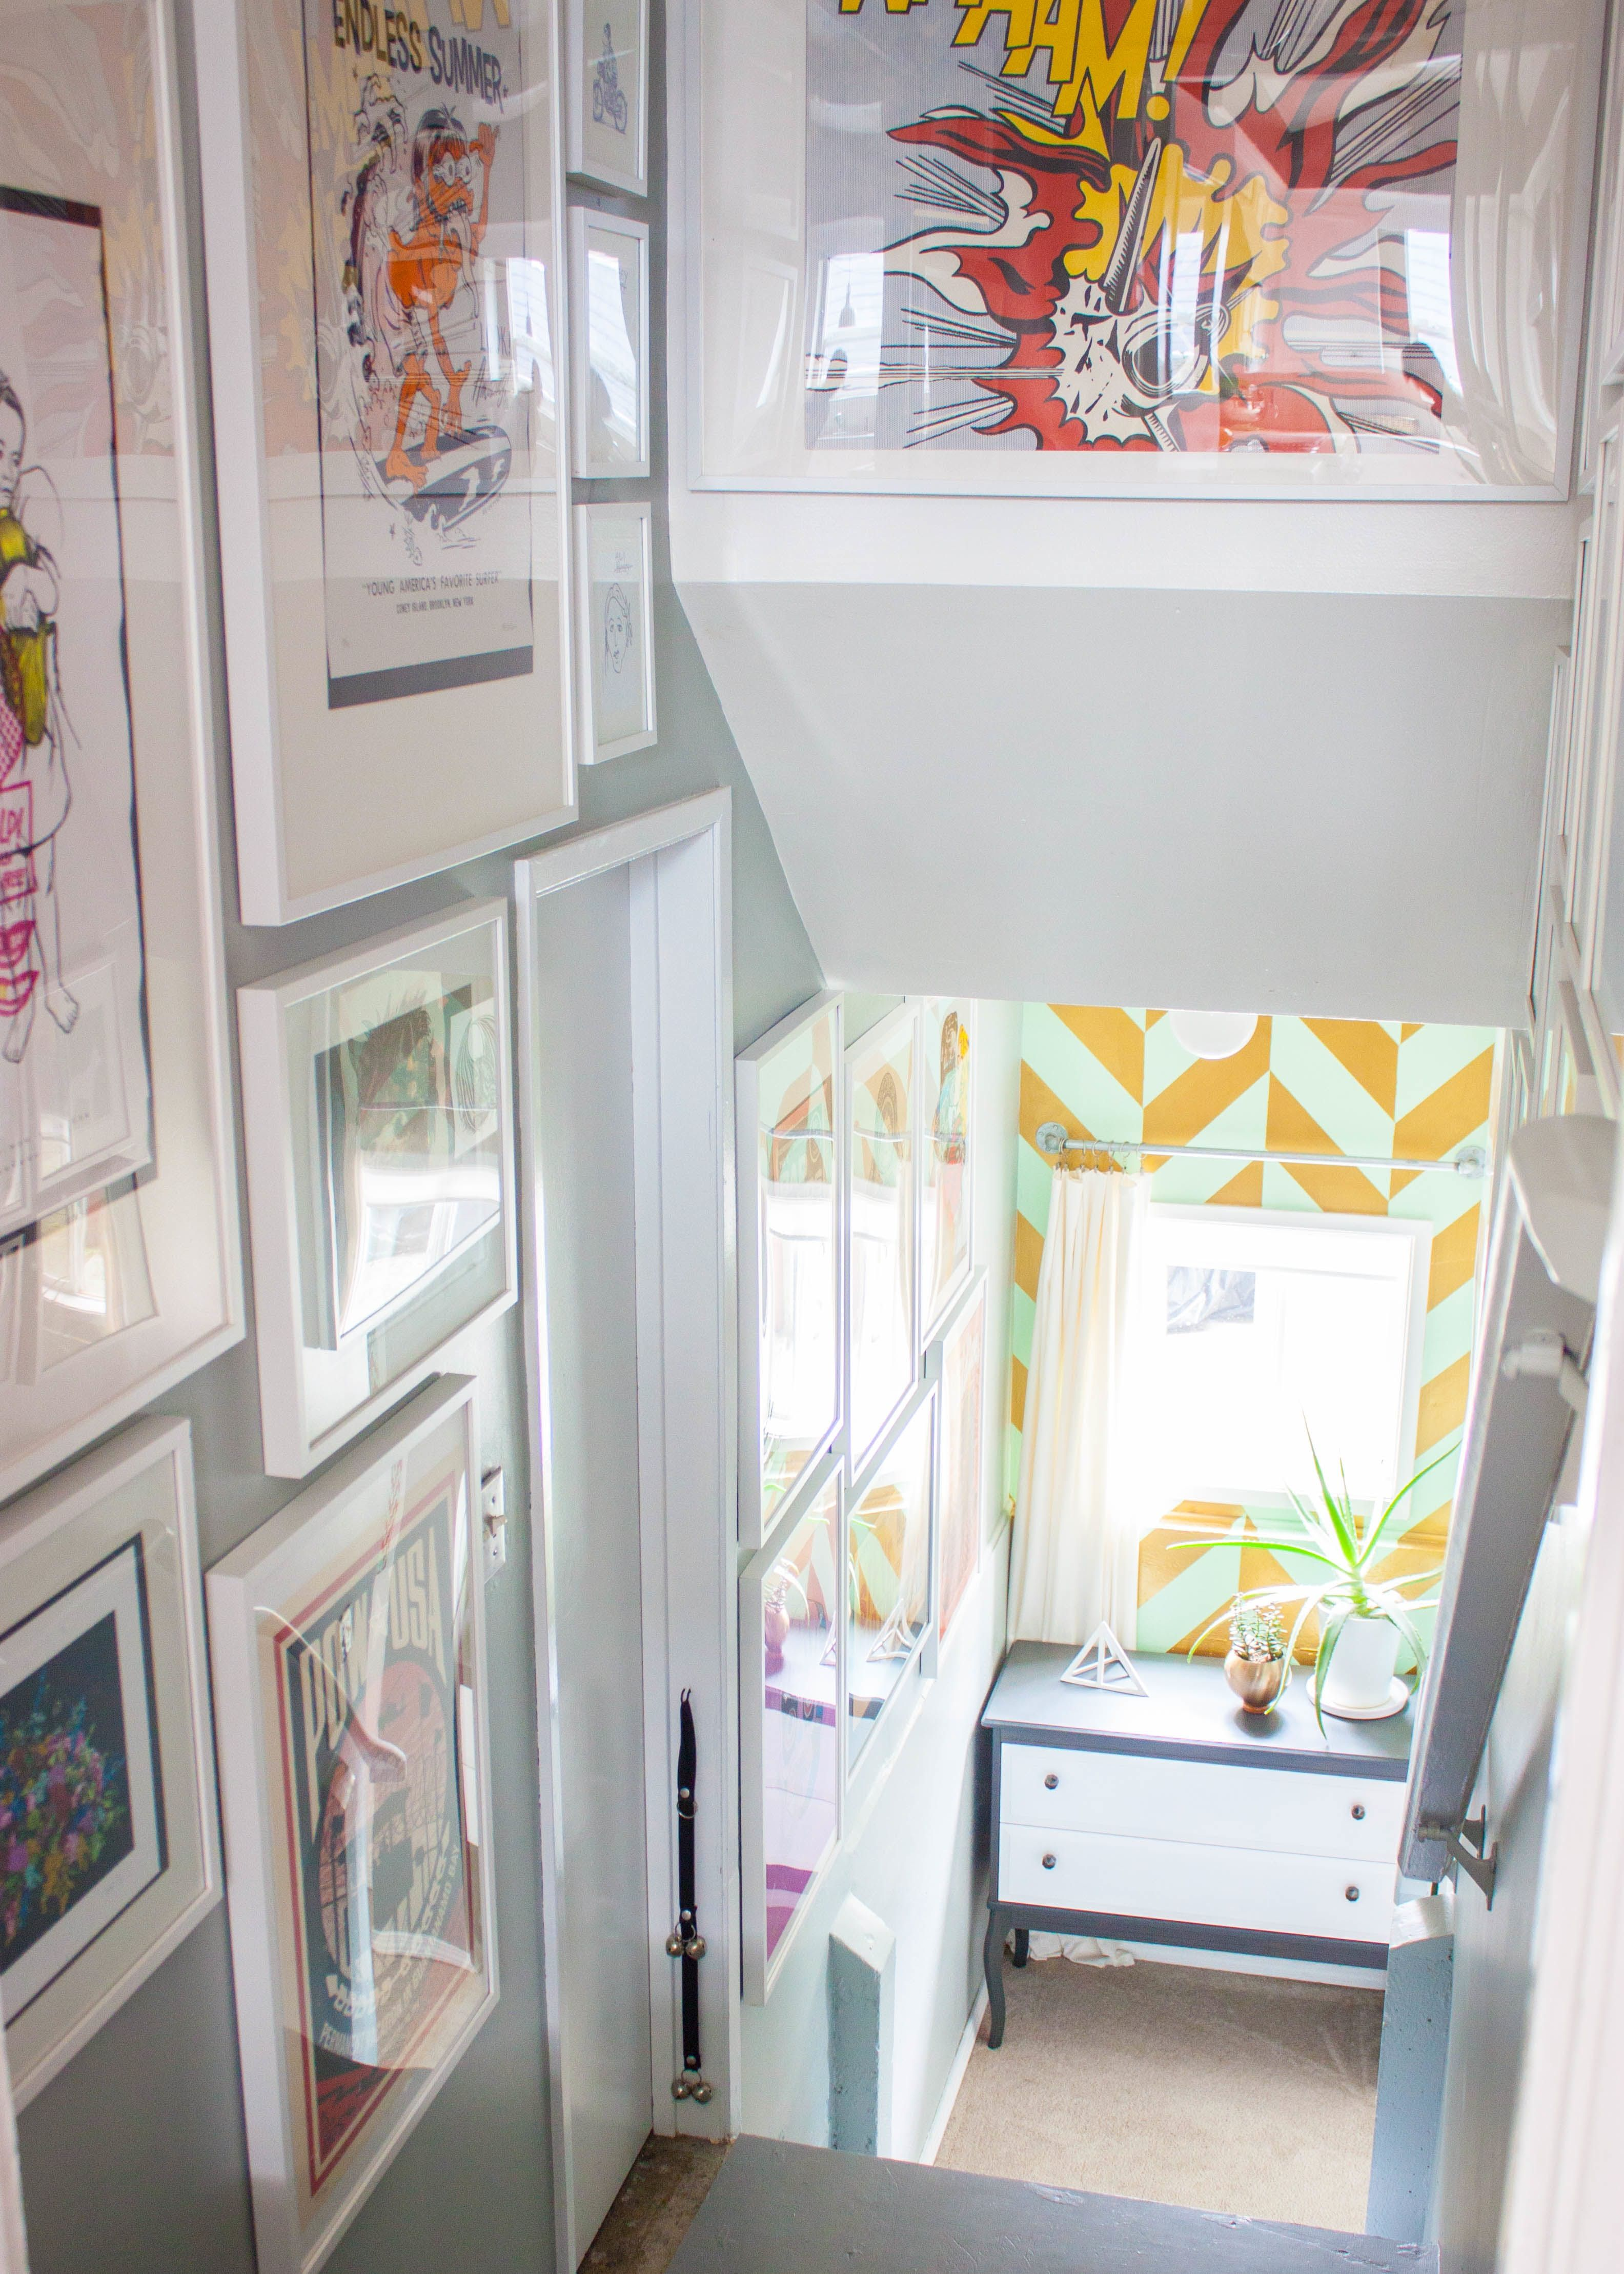 House Tour: A Playful, Pop Art-Inspired Seattle Home   Houses ...